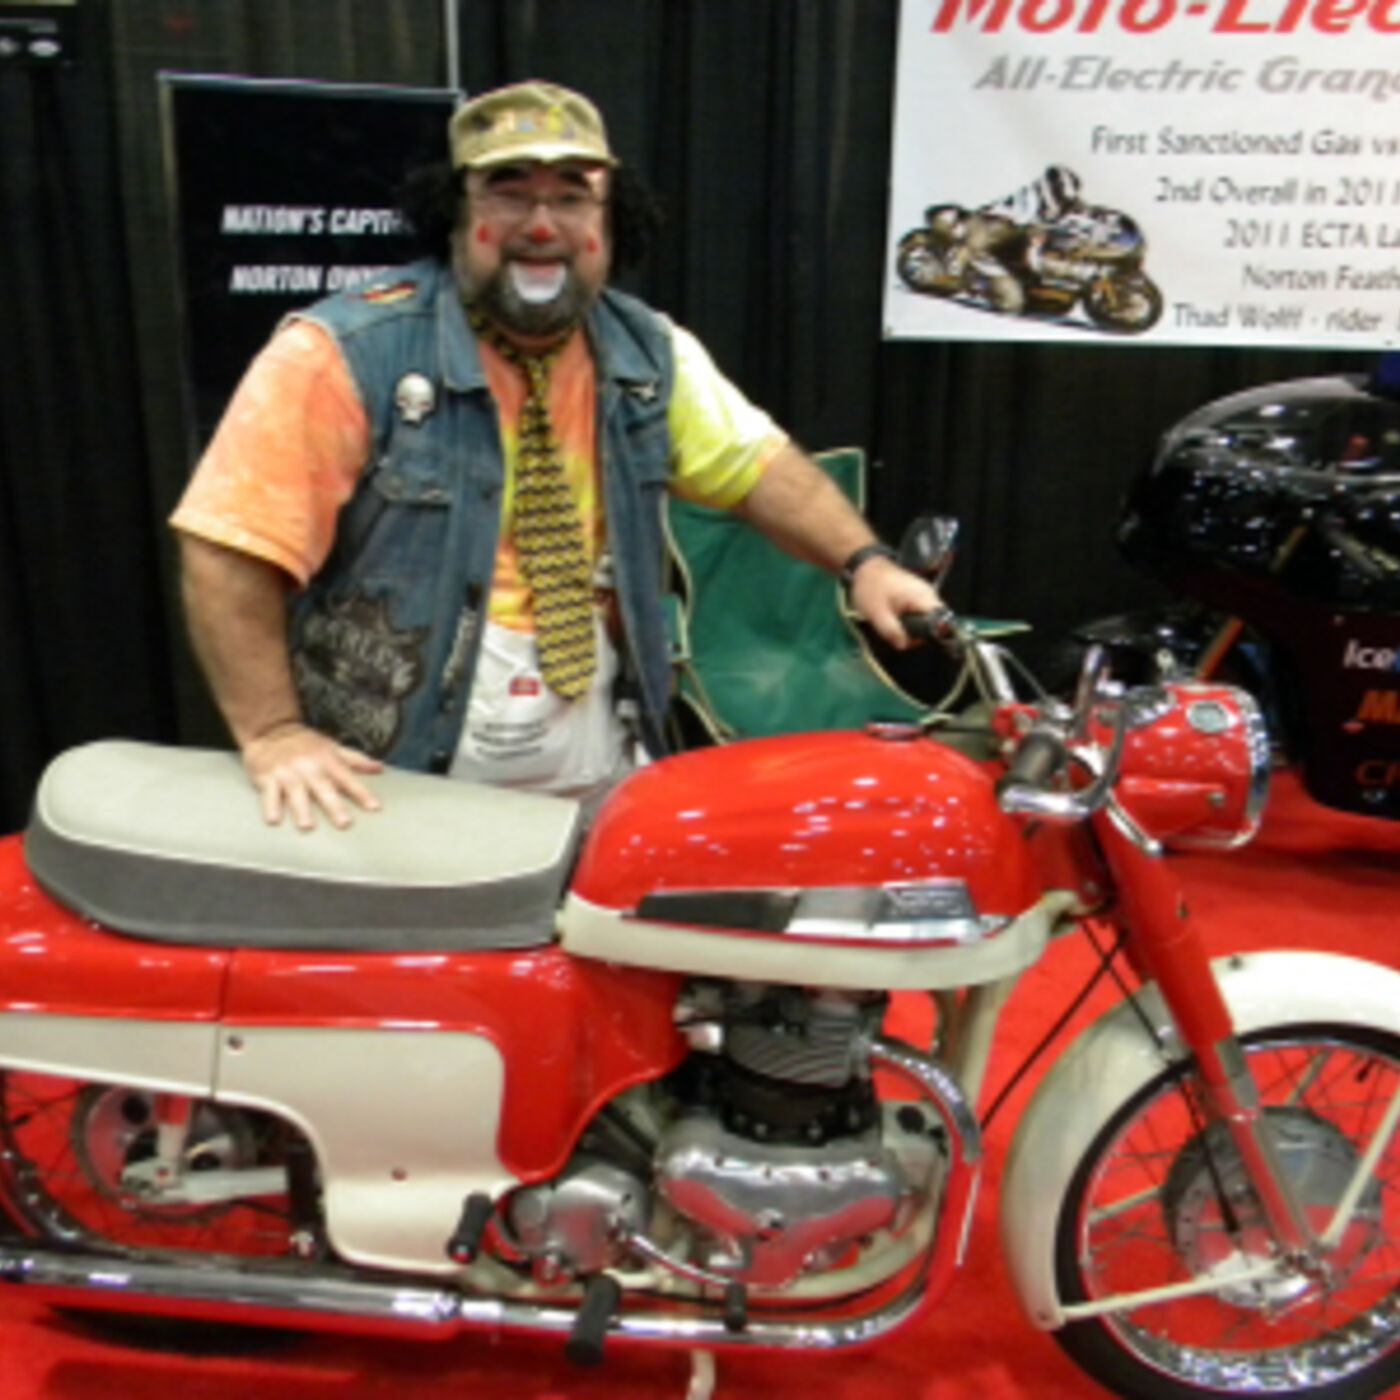 Episode 257 - Harley History #8 with Huffy The Clown